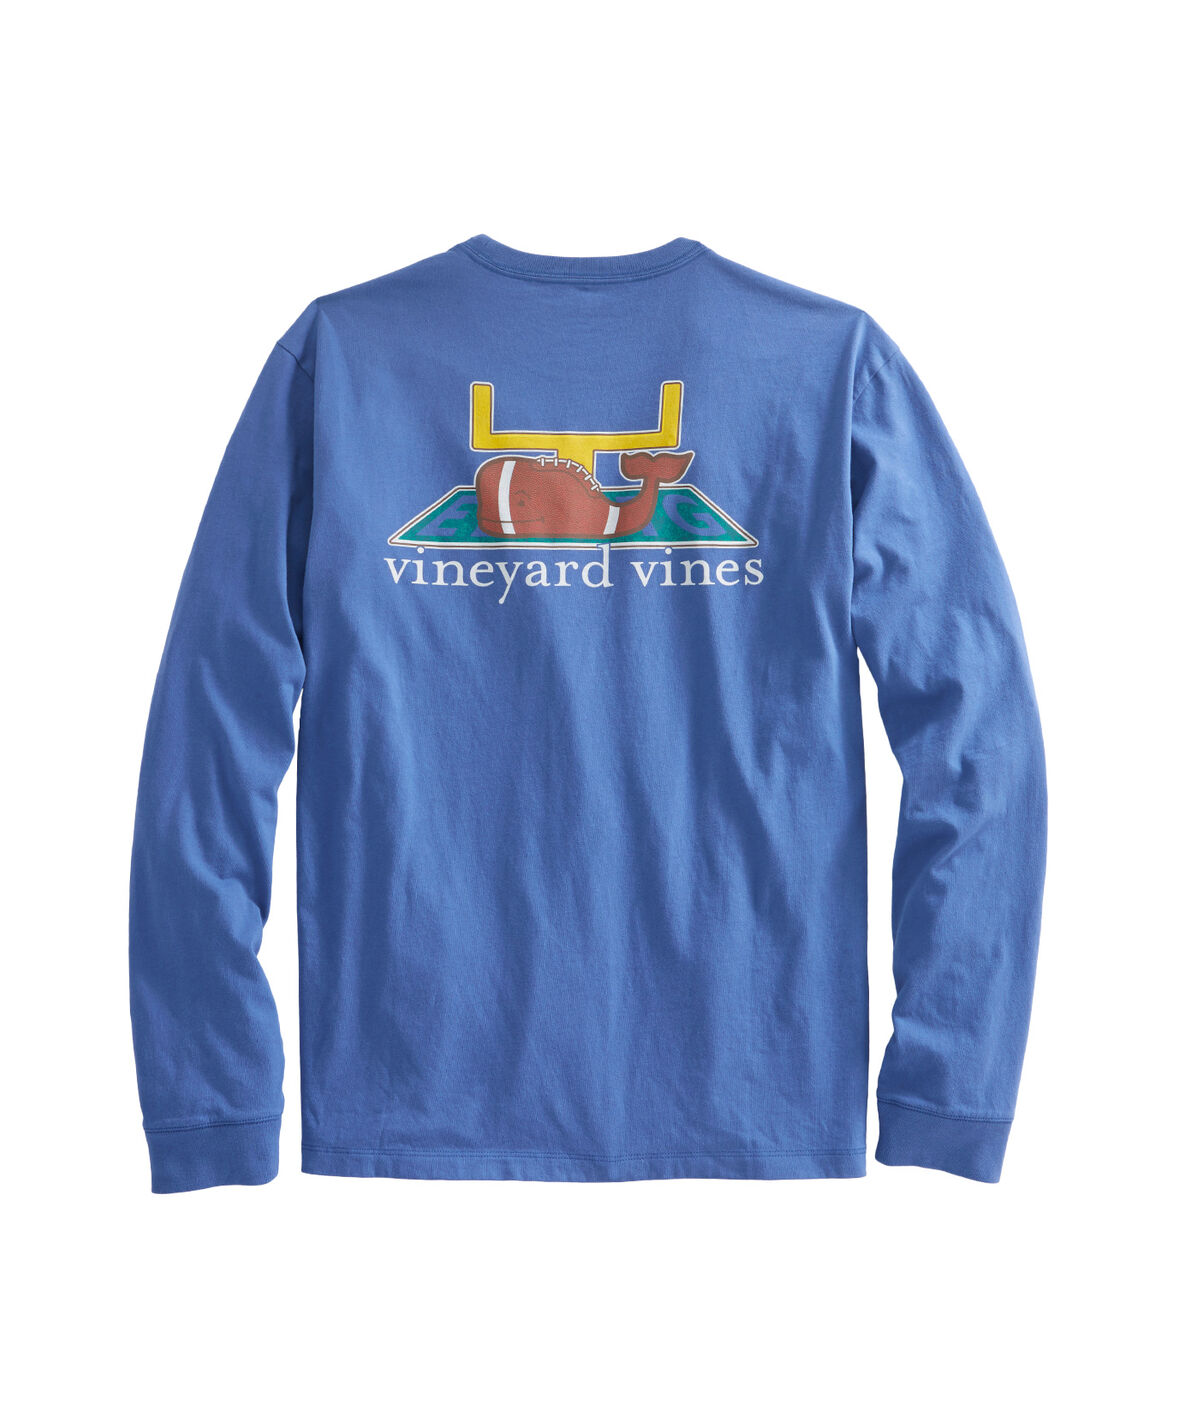 Find the latest vineyard vines promo codes, coupons & deals for December - plus earn % Cash Back at Ebates. Join now for a free $10 Welcome Bonus.